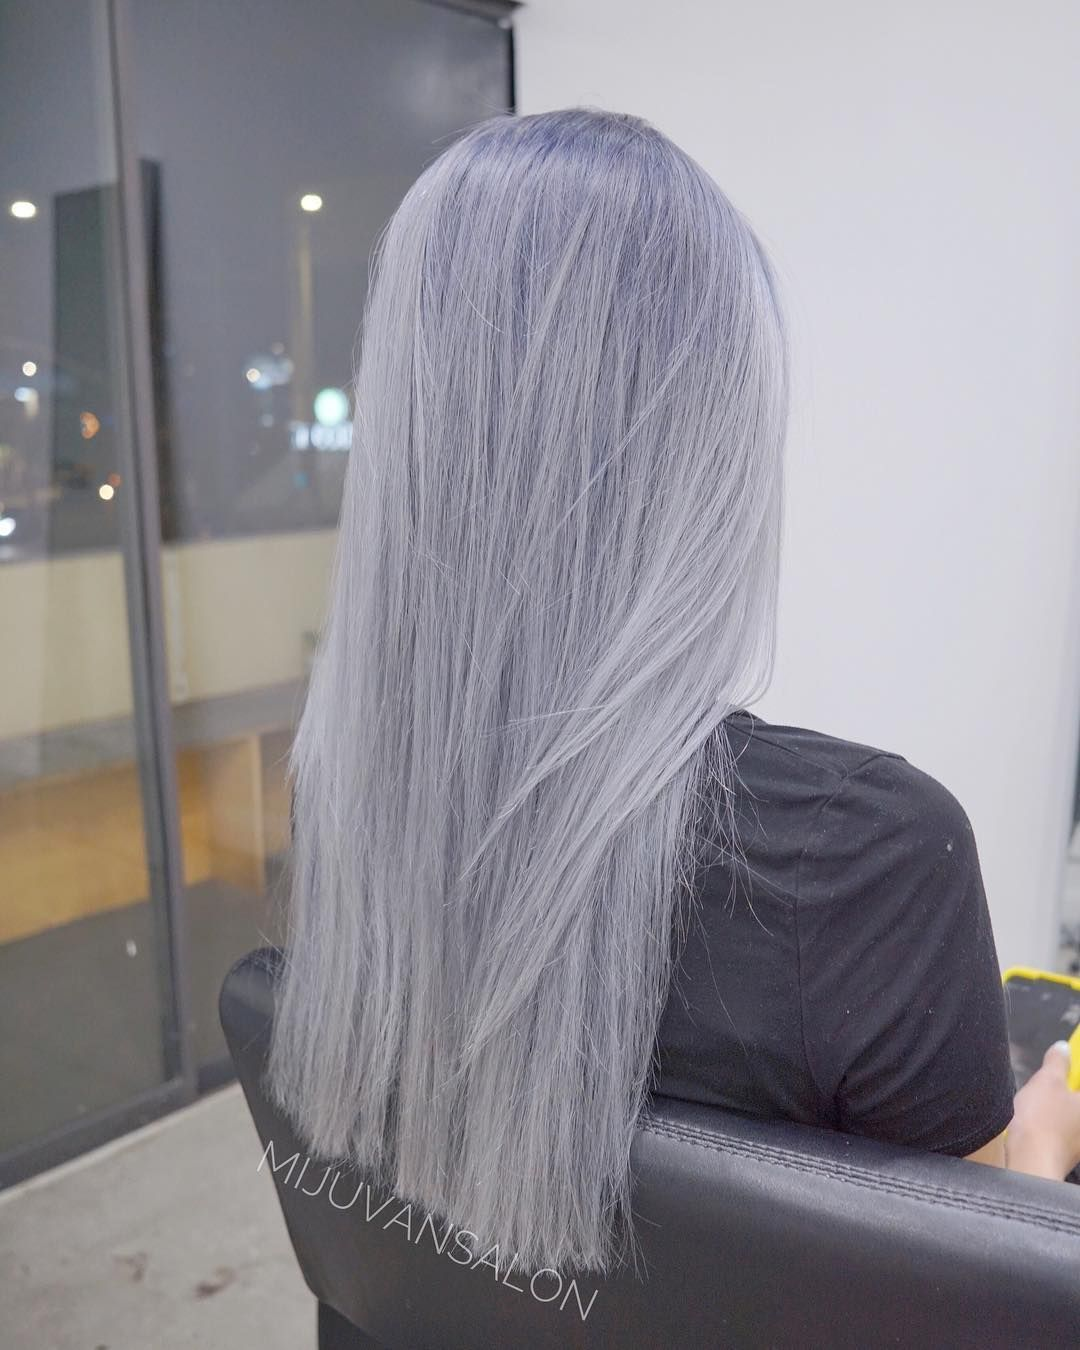 Gray Hair Wigs For African American Women Pastel Blue Wig Grey Eyebrows Hairpieces For Grey Hair Graphite Grey Hair Wig Companies Online